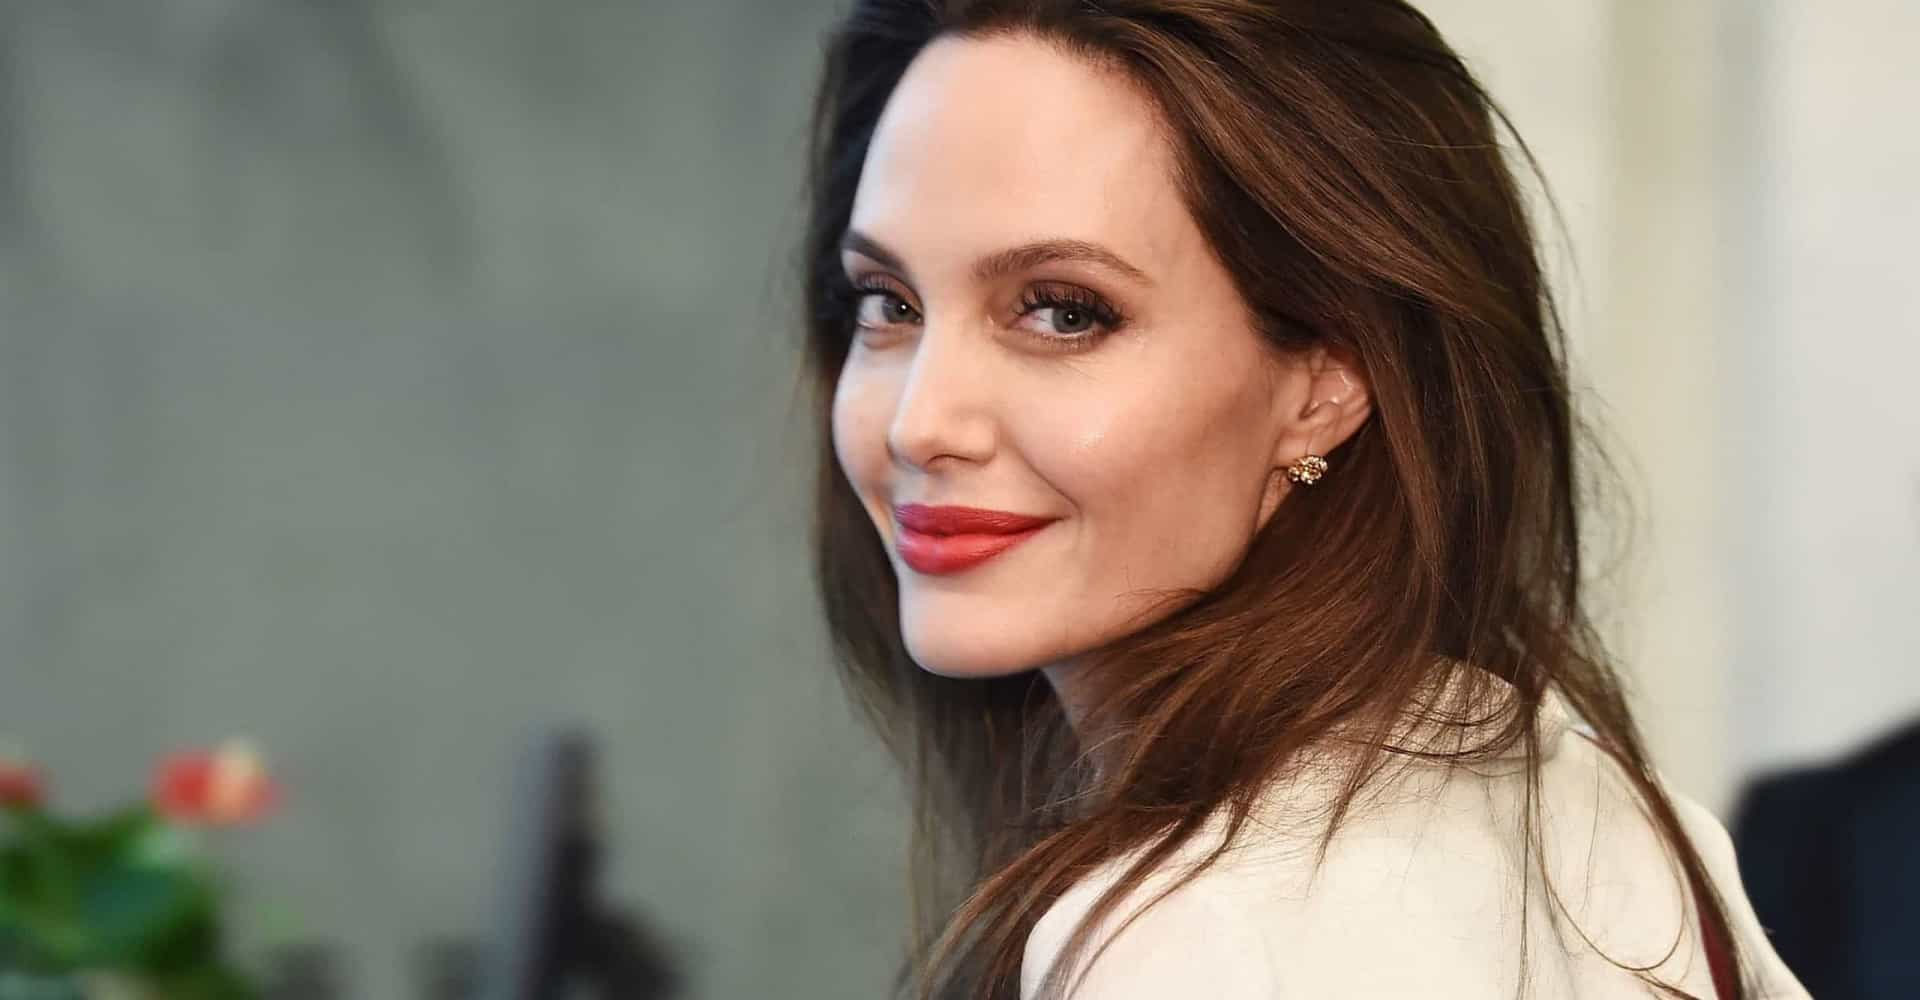 Angelina Jolie worked as a director at the funeral (photo: playback)